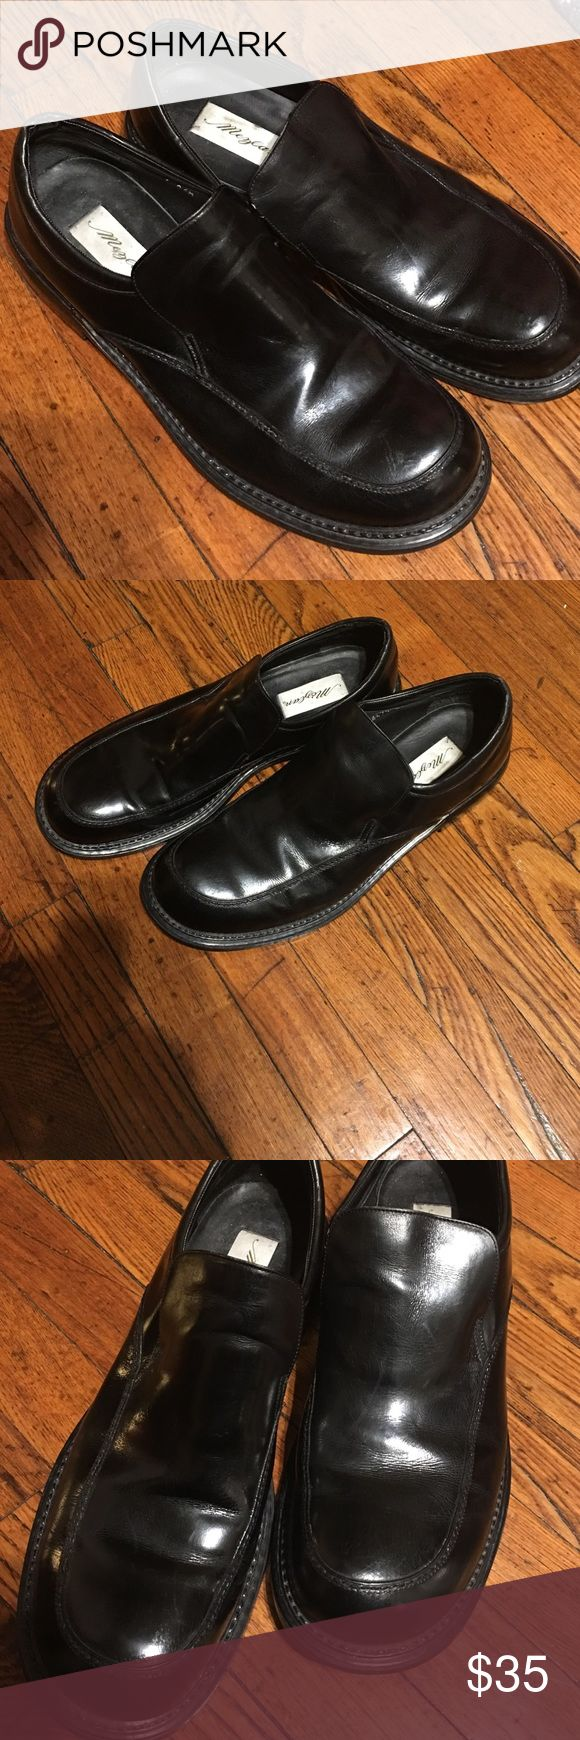 Men's shoes Size 13 men's dress shoes. Mezlan Shoes Loafers & Slip-Ons